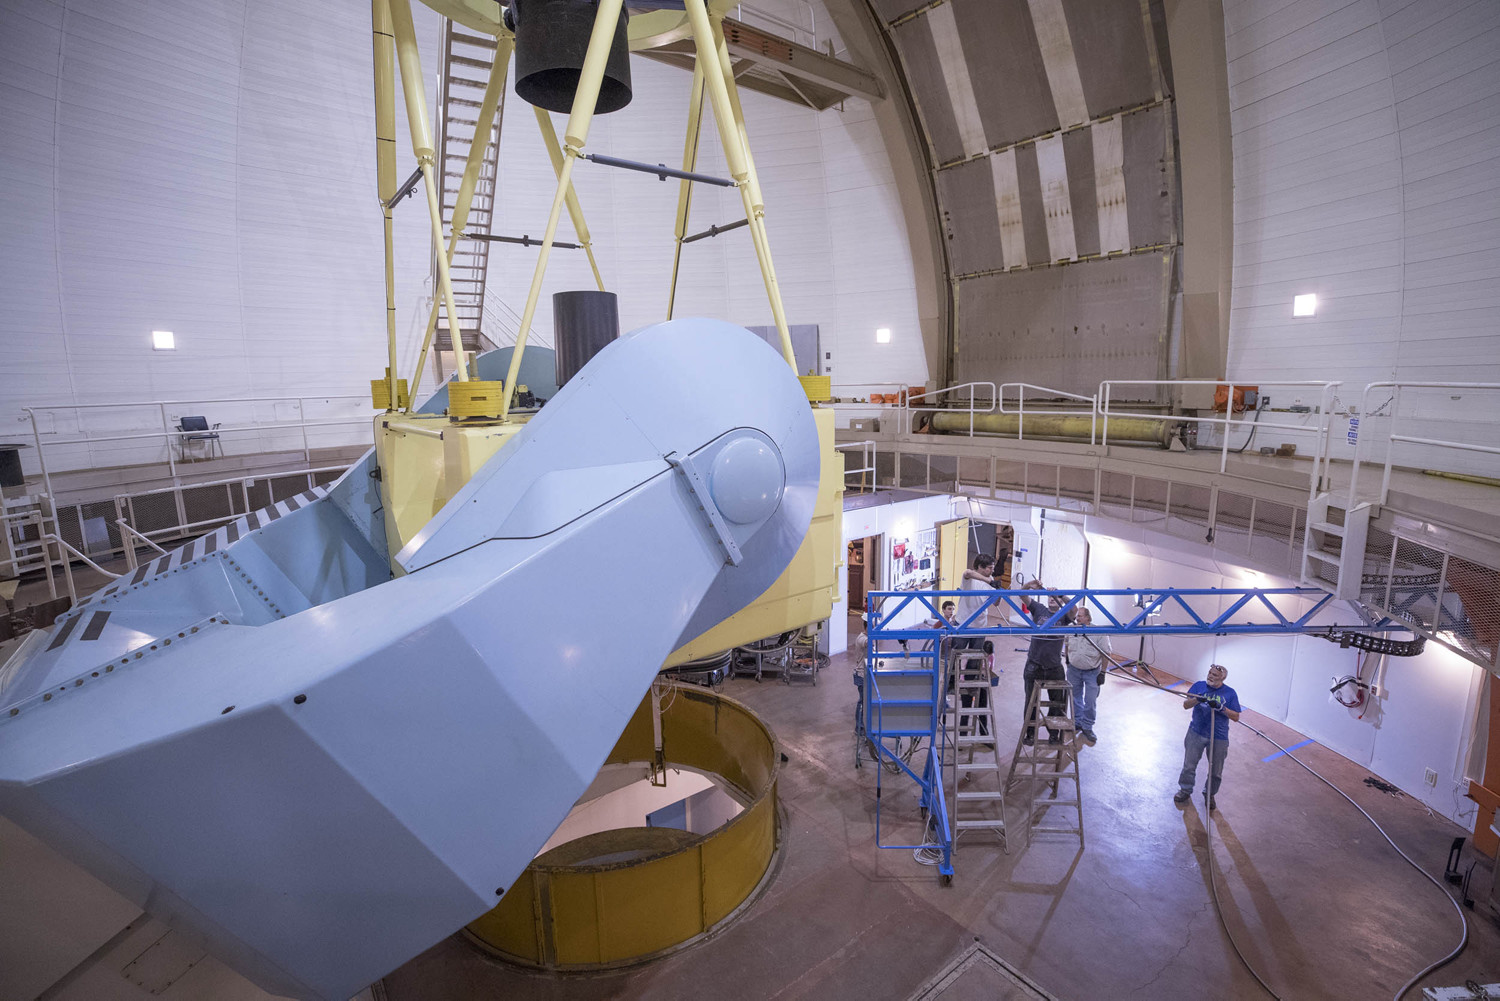 The team from UVA worked in the dome room of the telescope on the arm and connection for the spectrograph as part of the APOGEE project.